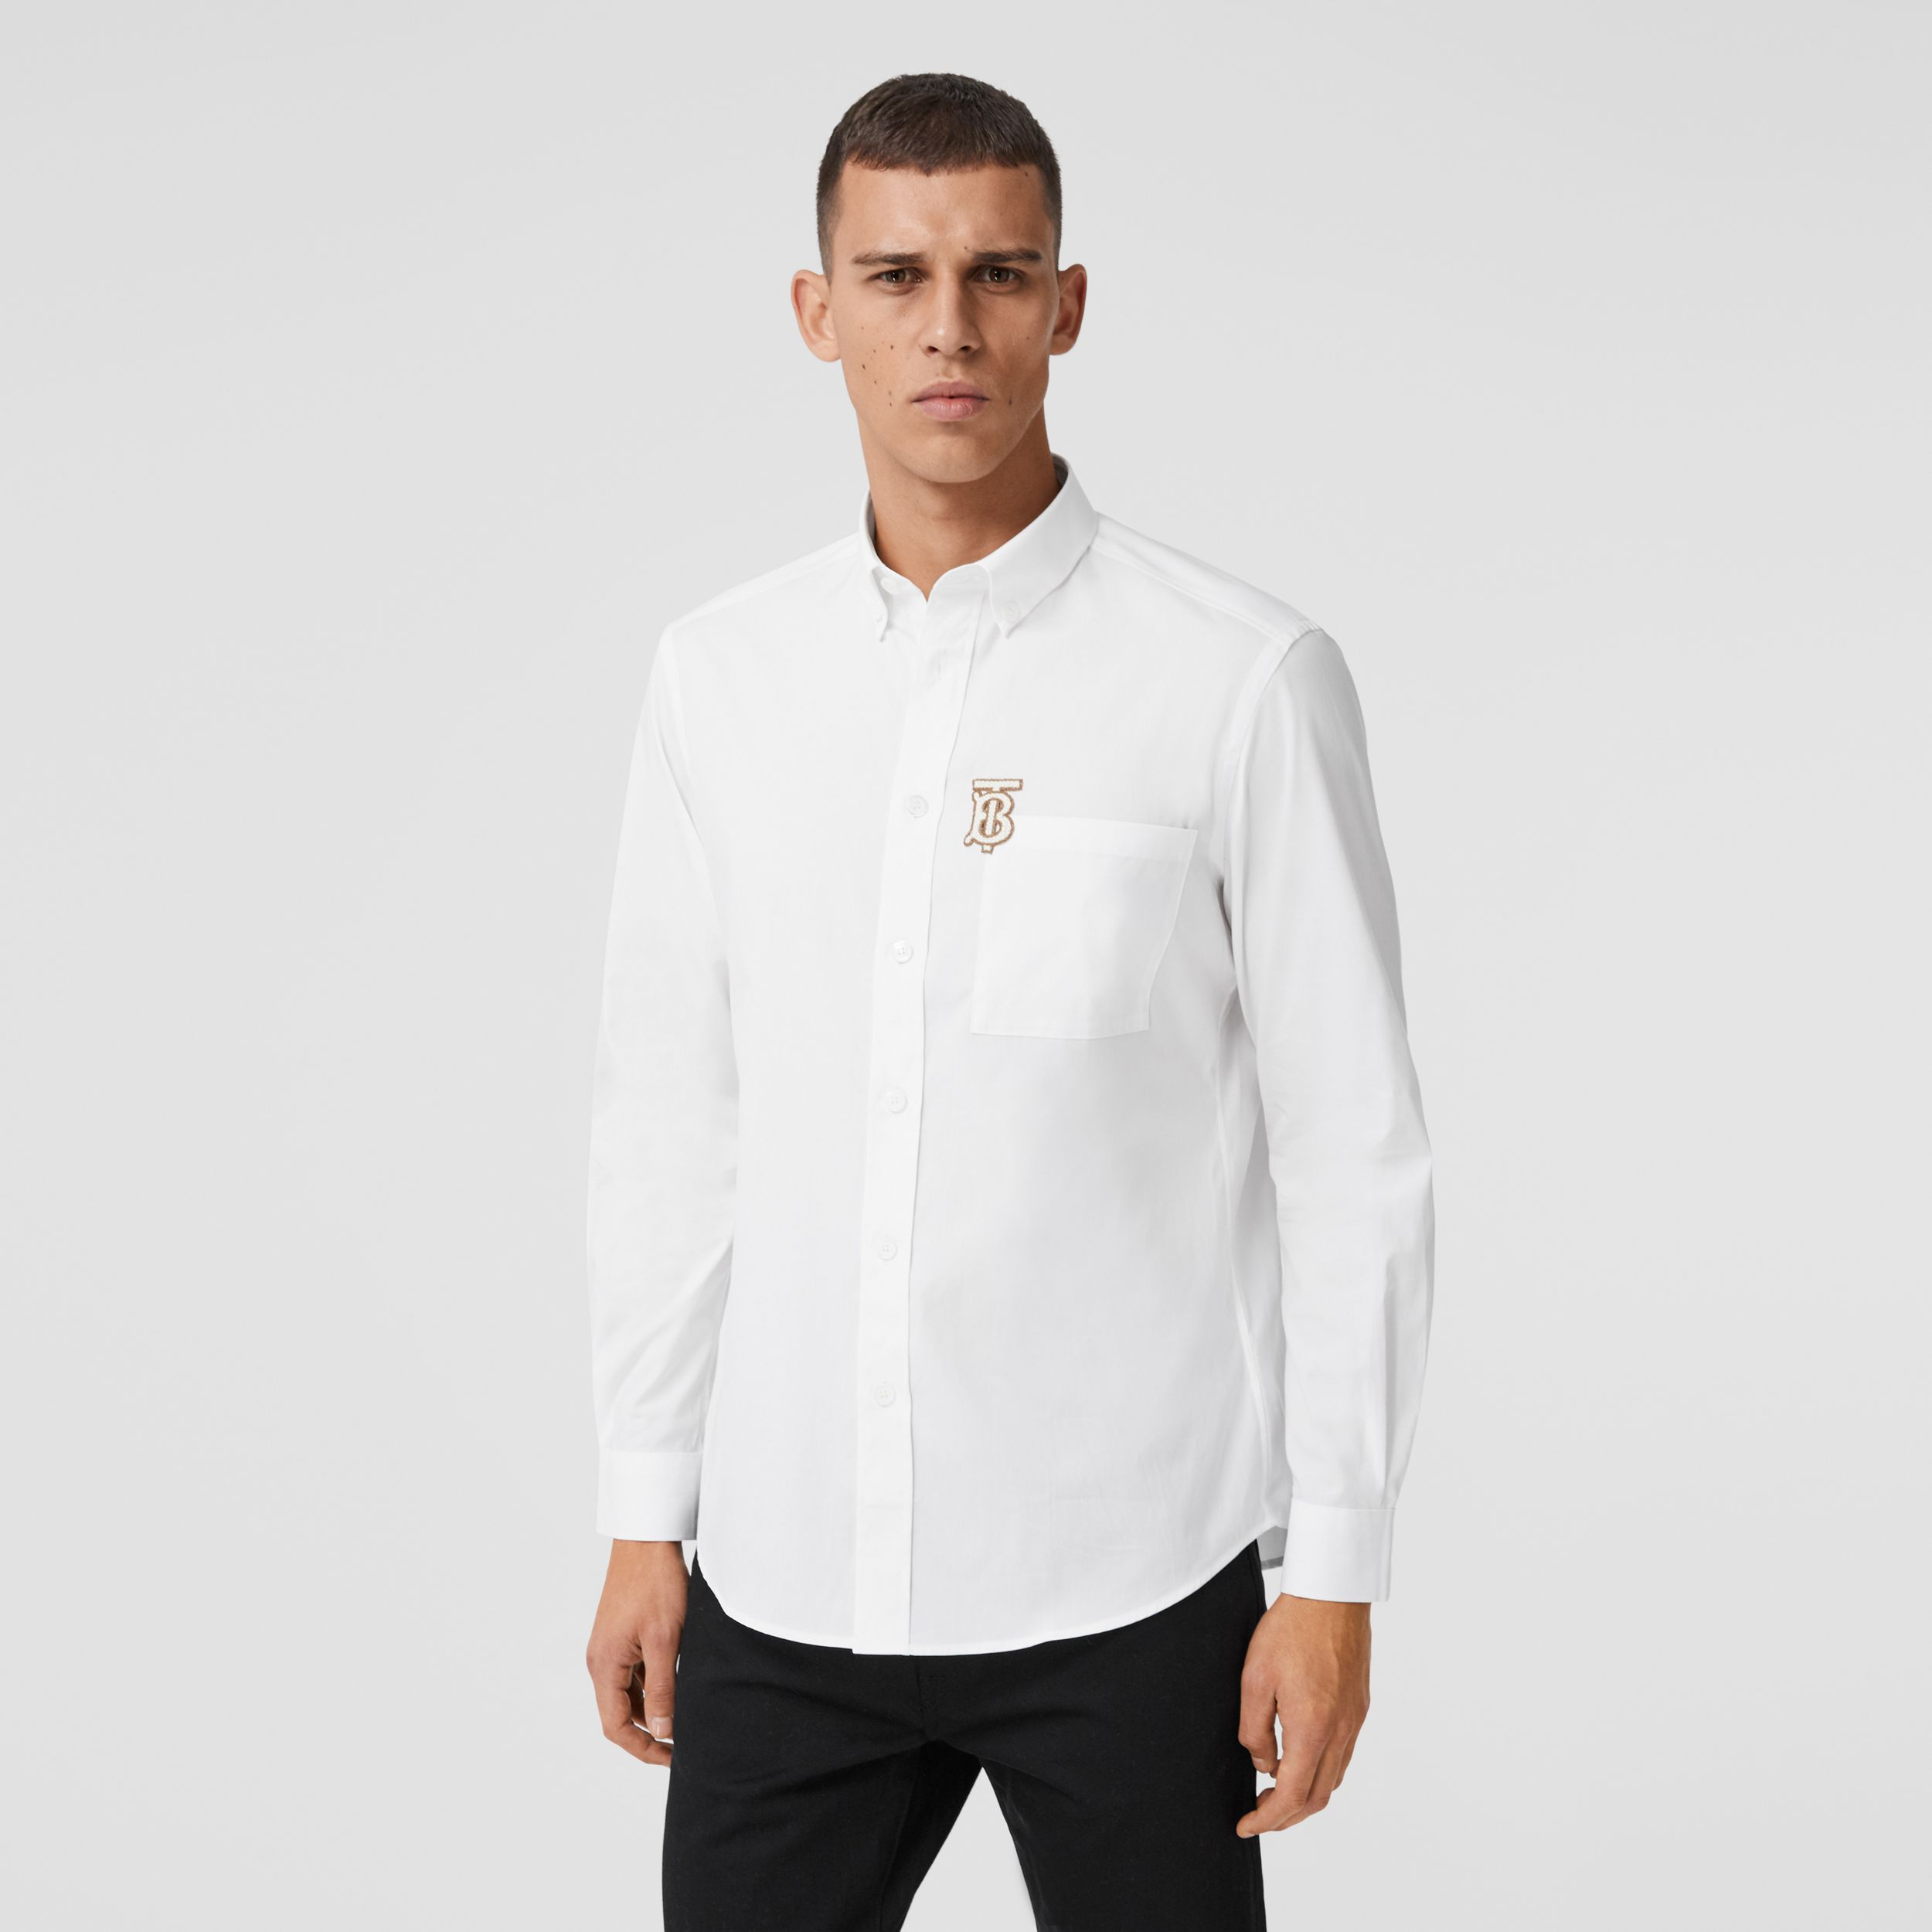 Monogram Motif Stretch Cotton Poplin Shirt in White - Men | Burberry - 1